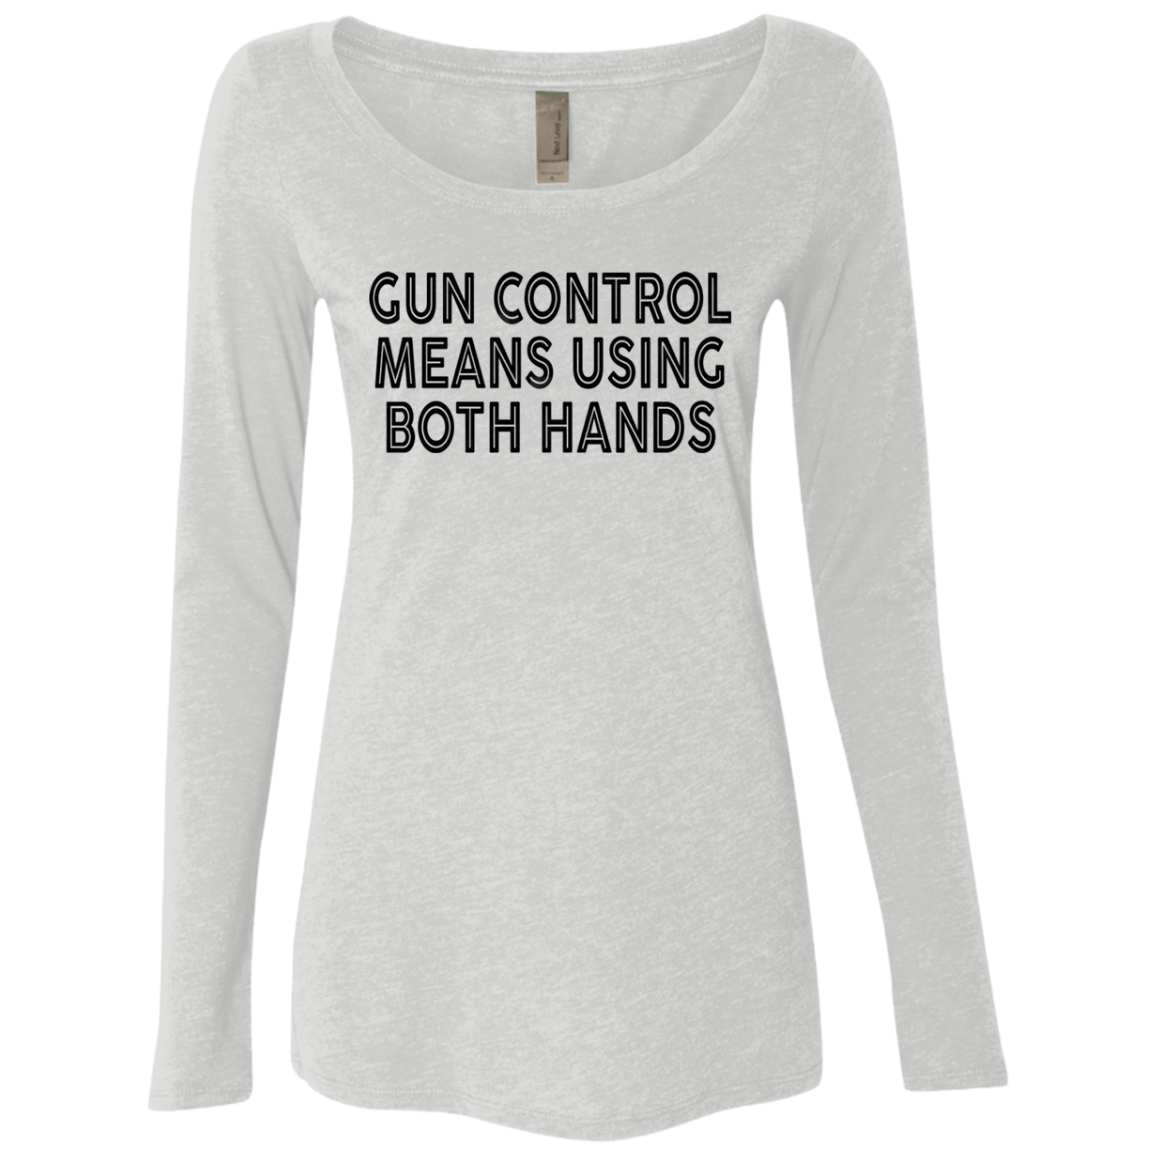 Gun Control Means Using Both Hands Women's Long Sleeve Tee